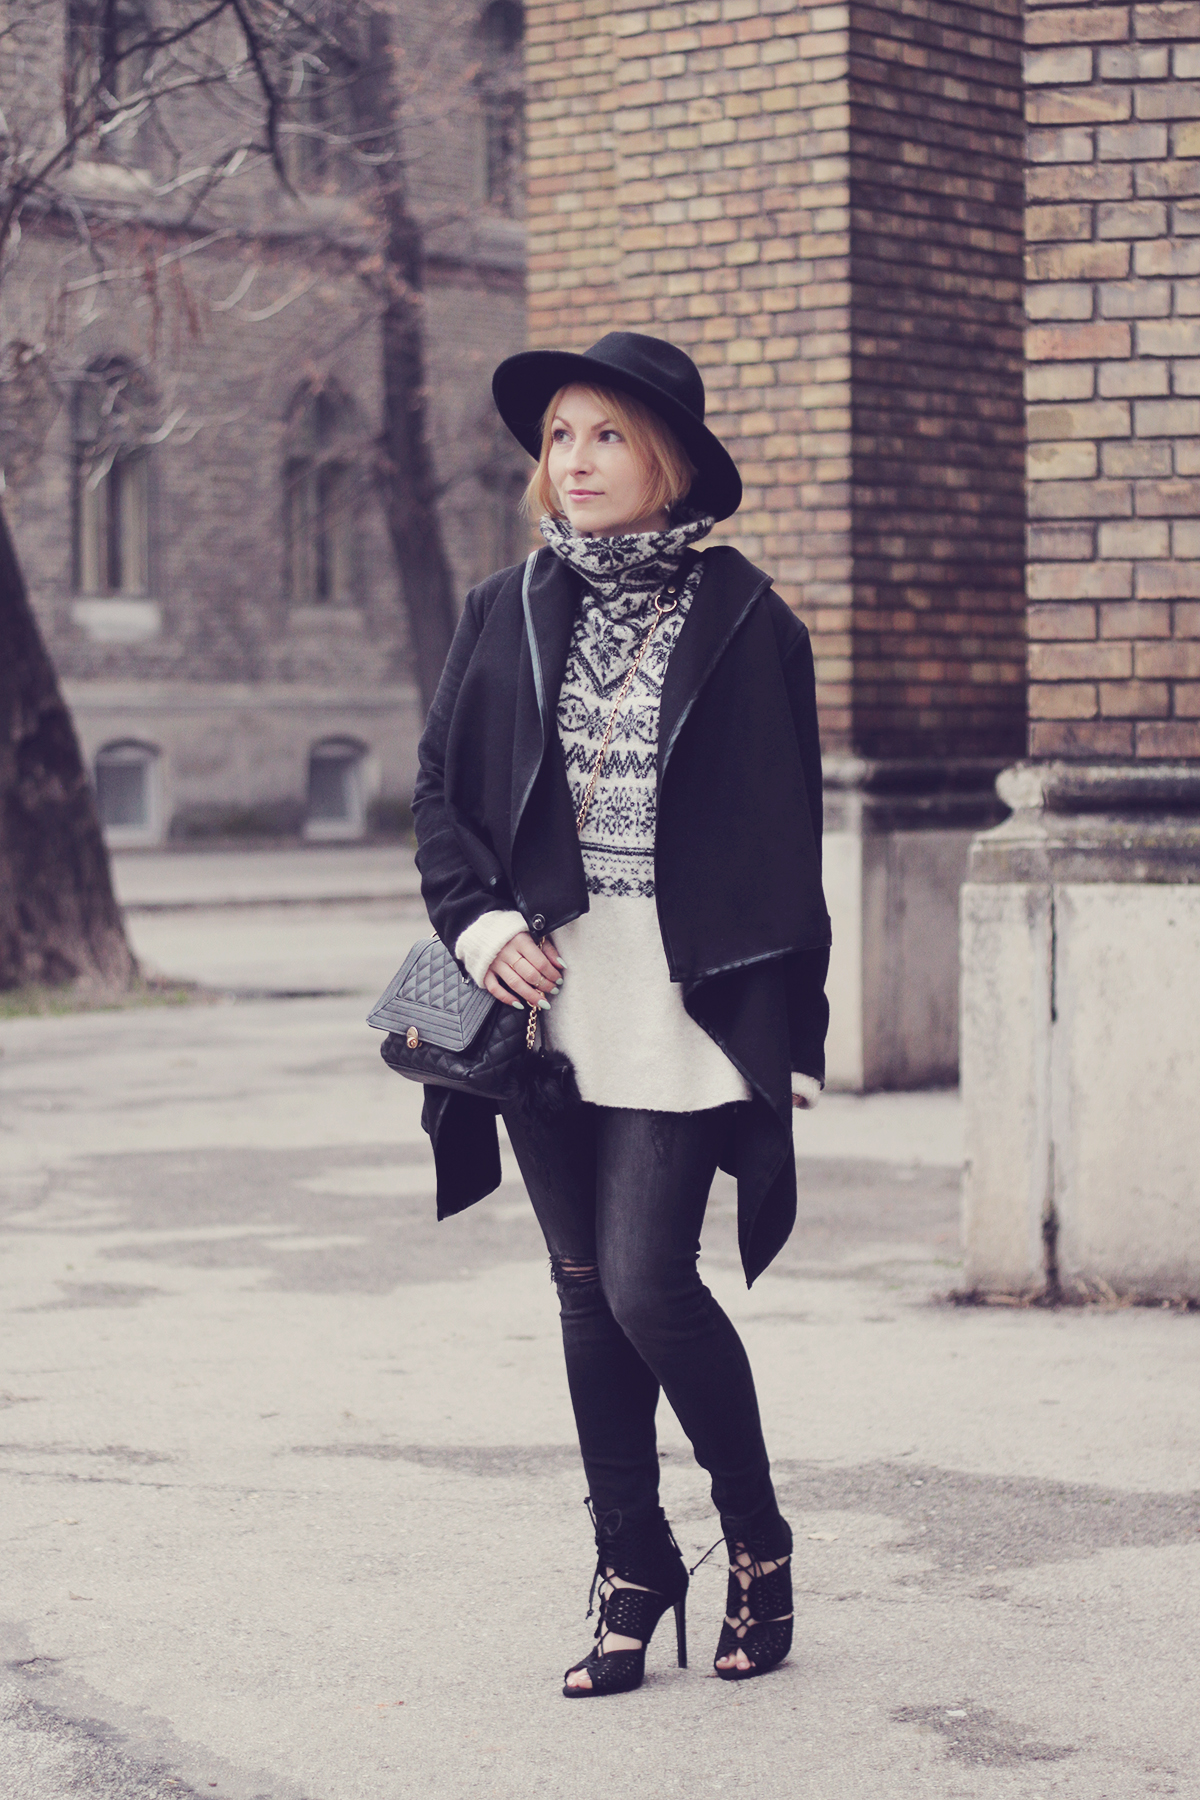 christmas winter jumper with heels and black hat